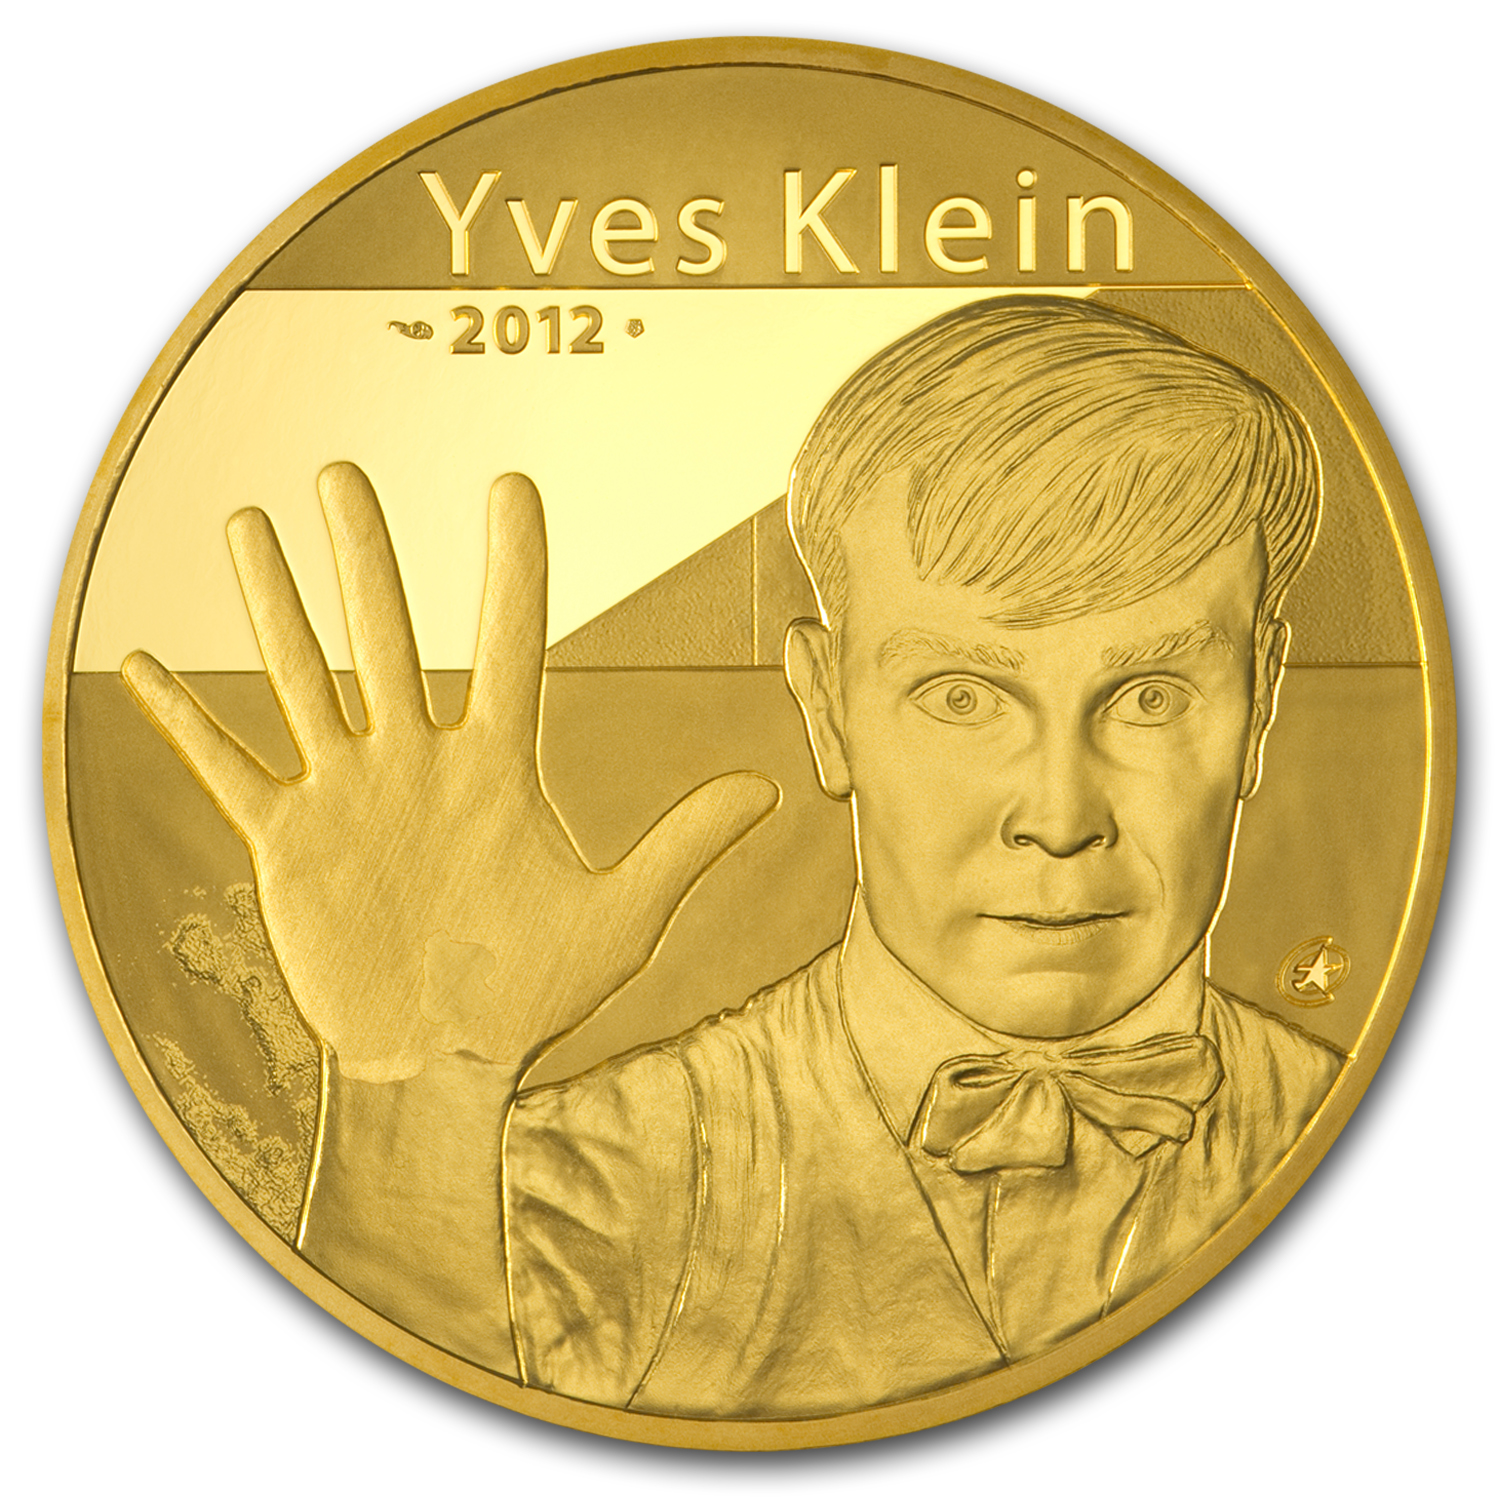 2012 5 oz Proof Gold €500 Artist Yves Klein (2-17)